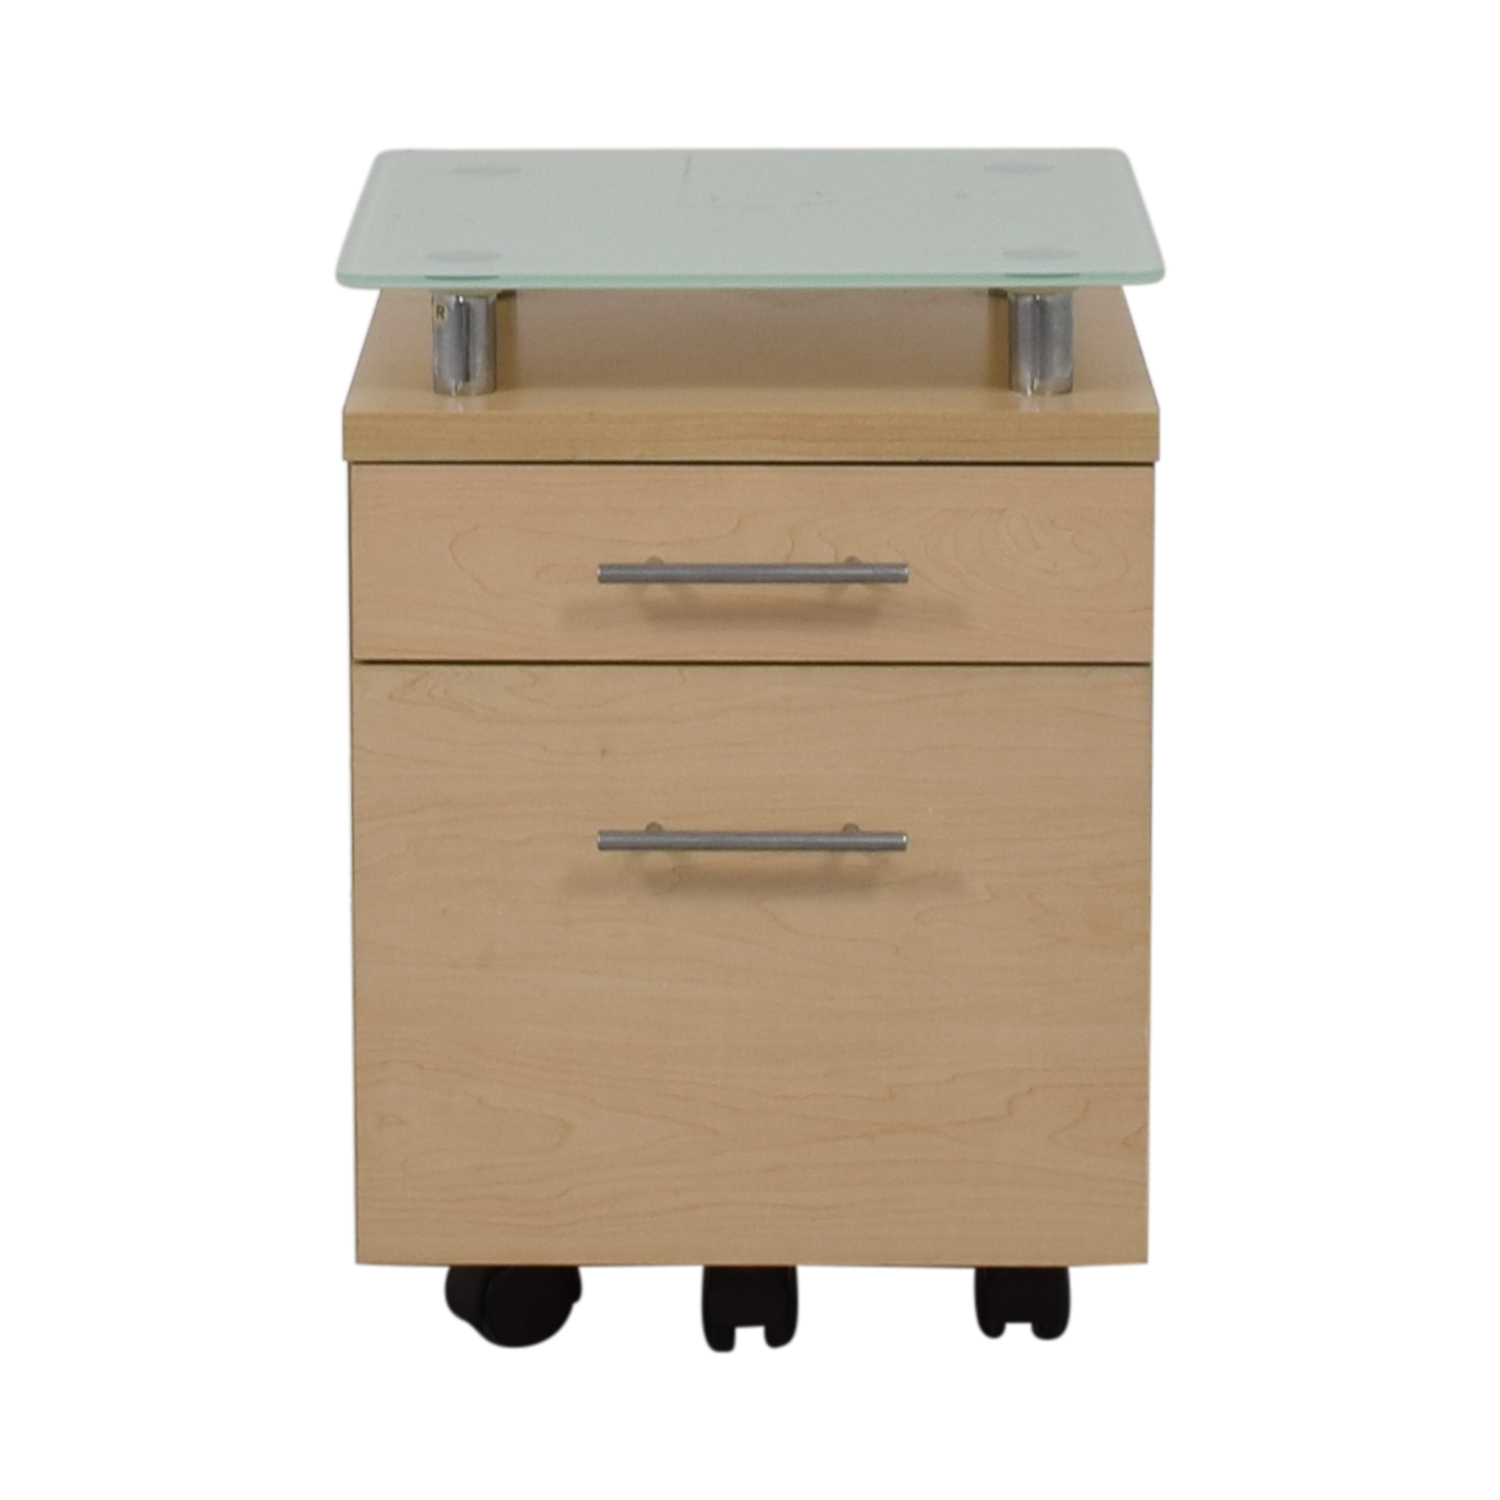 Crate & Barrel Crate & Barrel Glass Top File Cabinet price